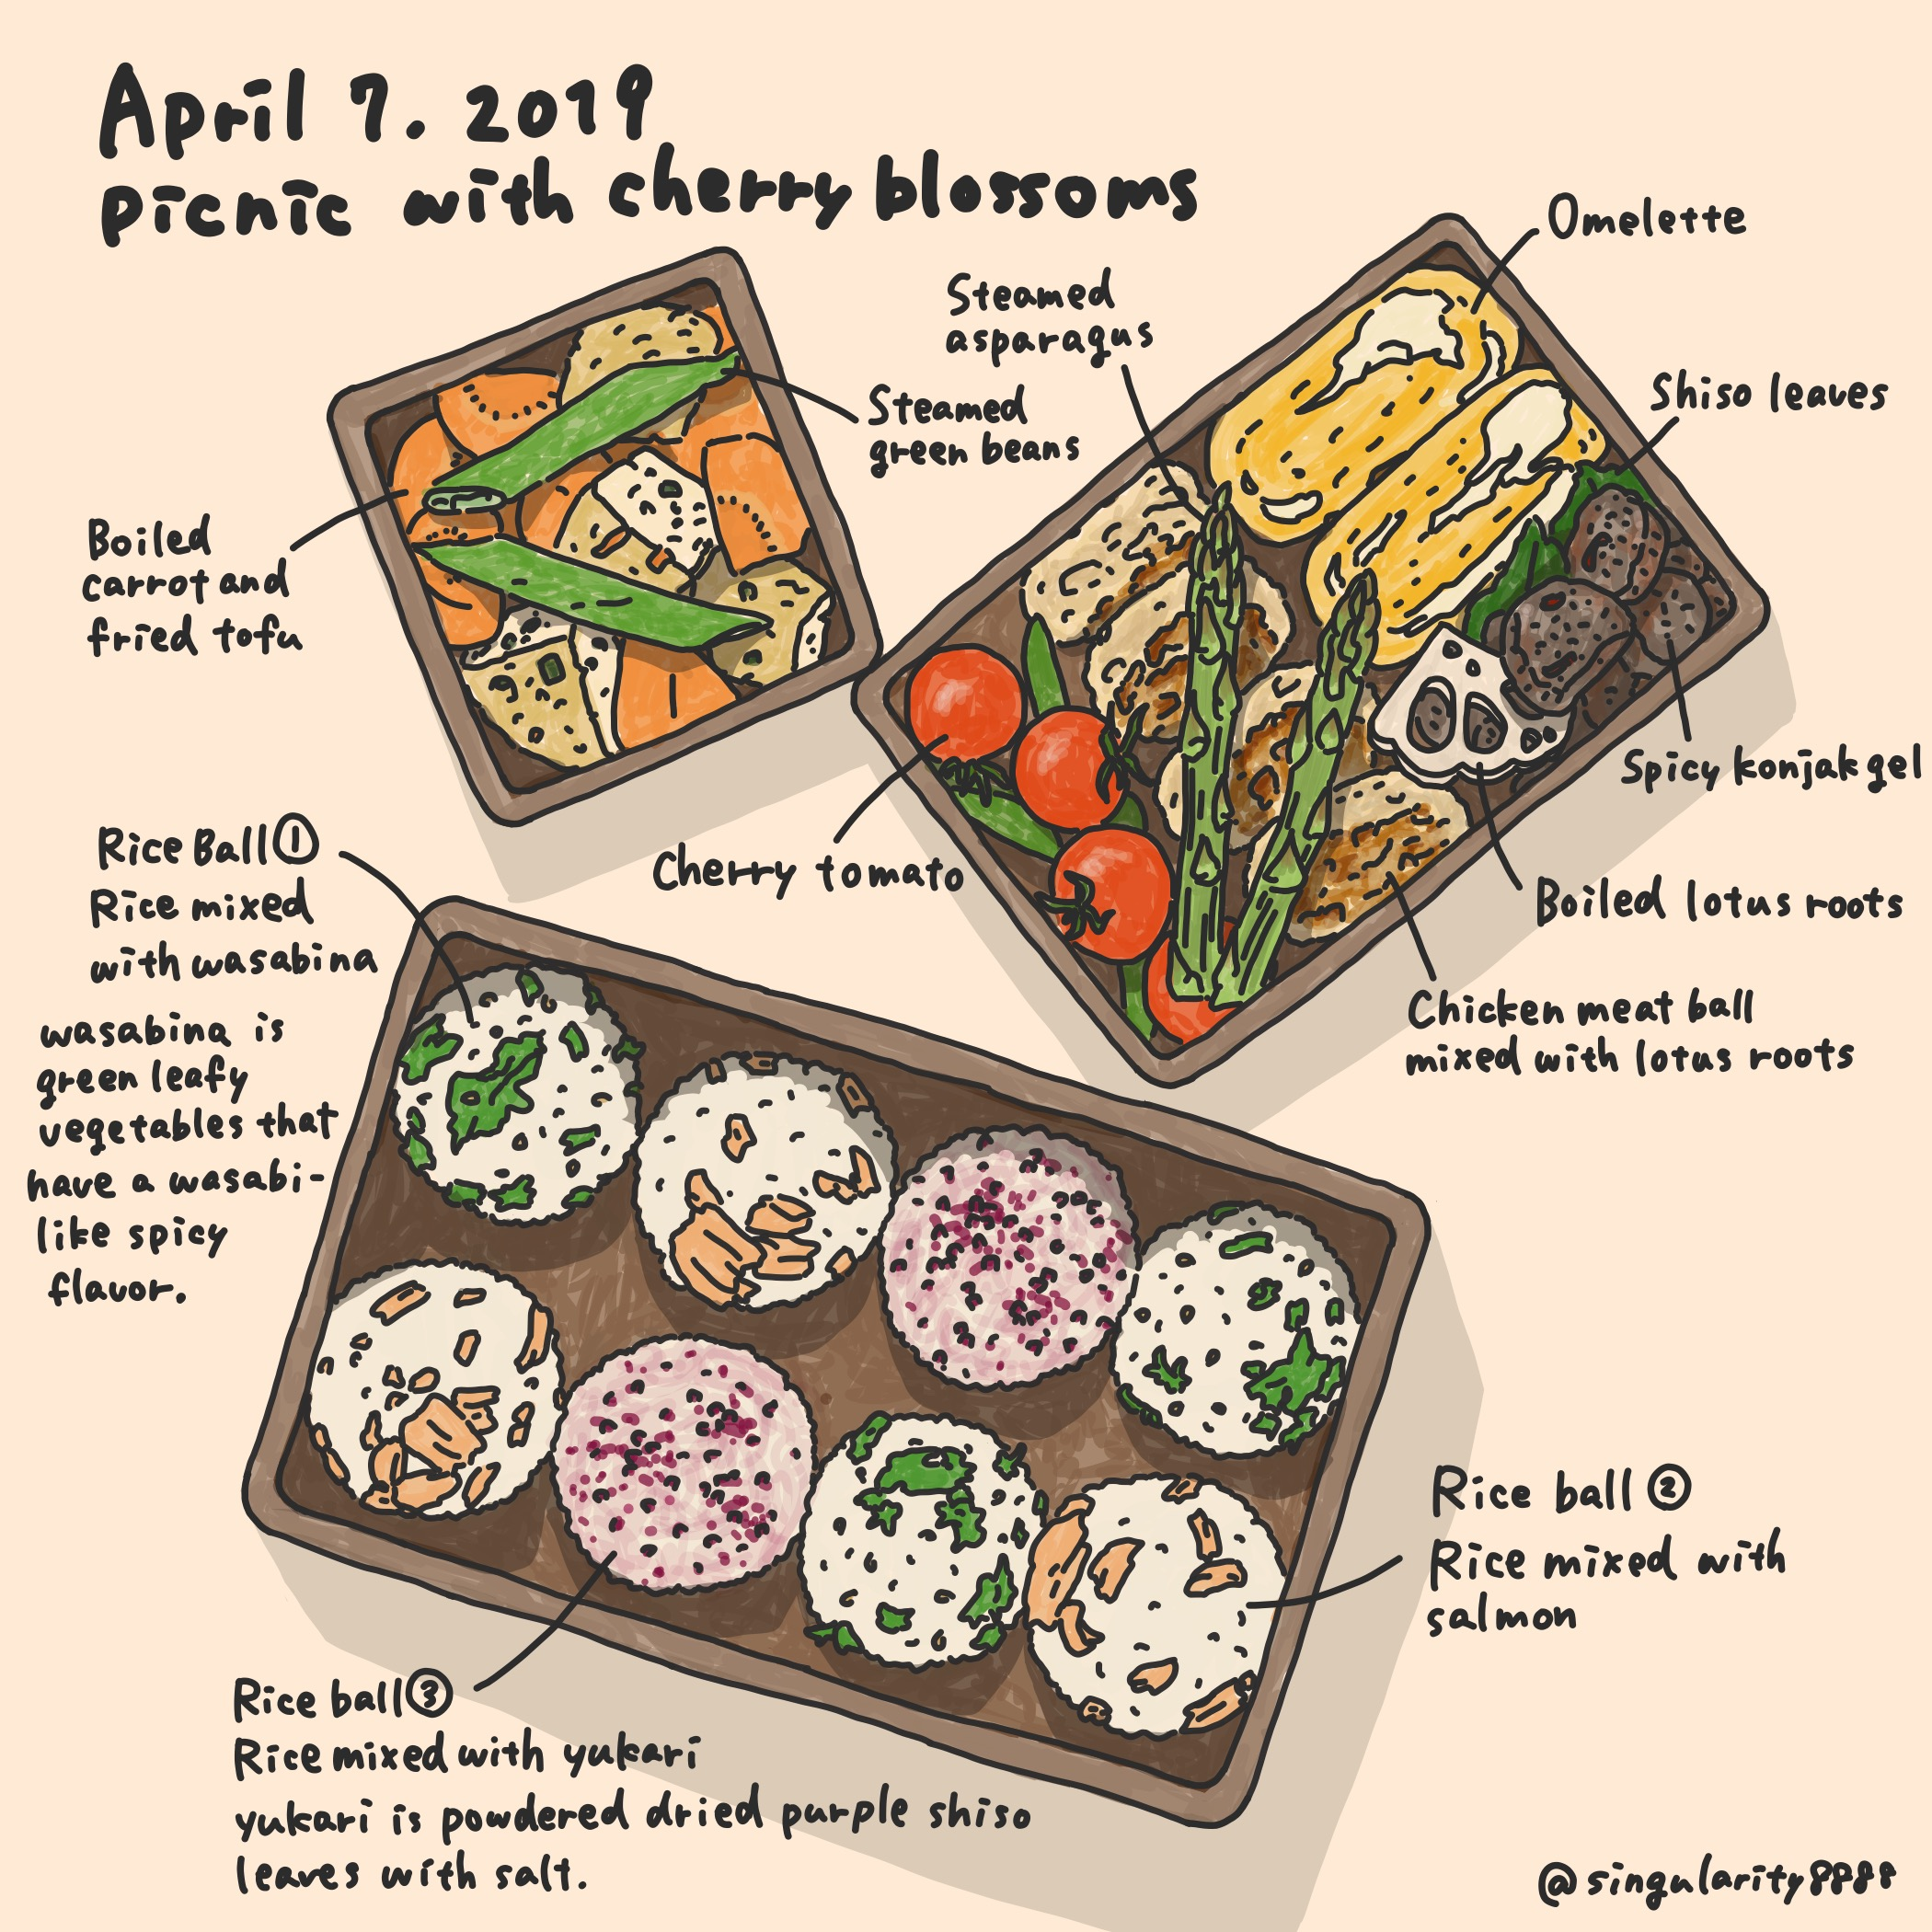 Picnic Lunch on April 7, 2019 Image